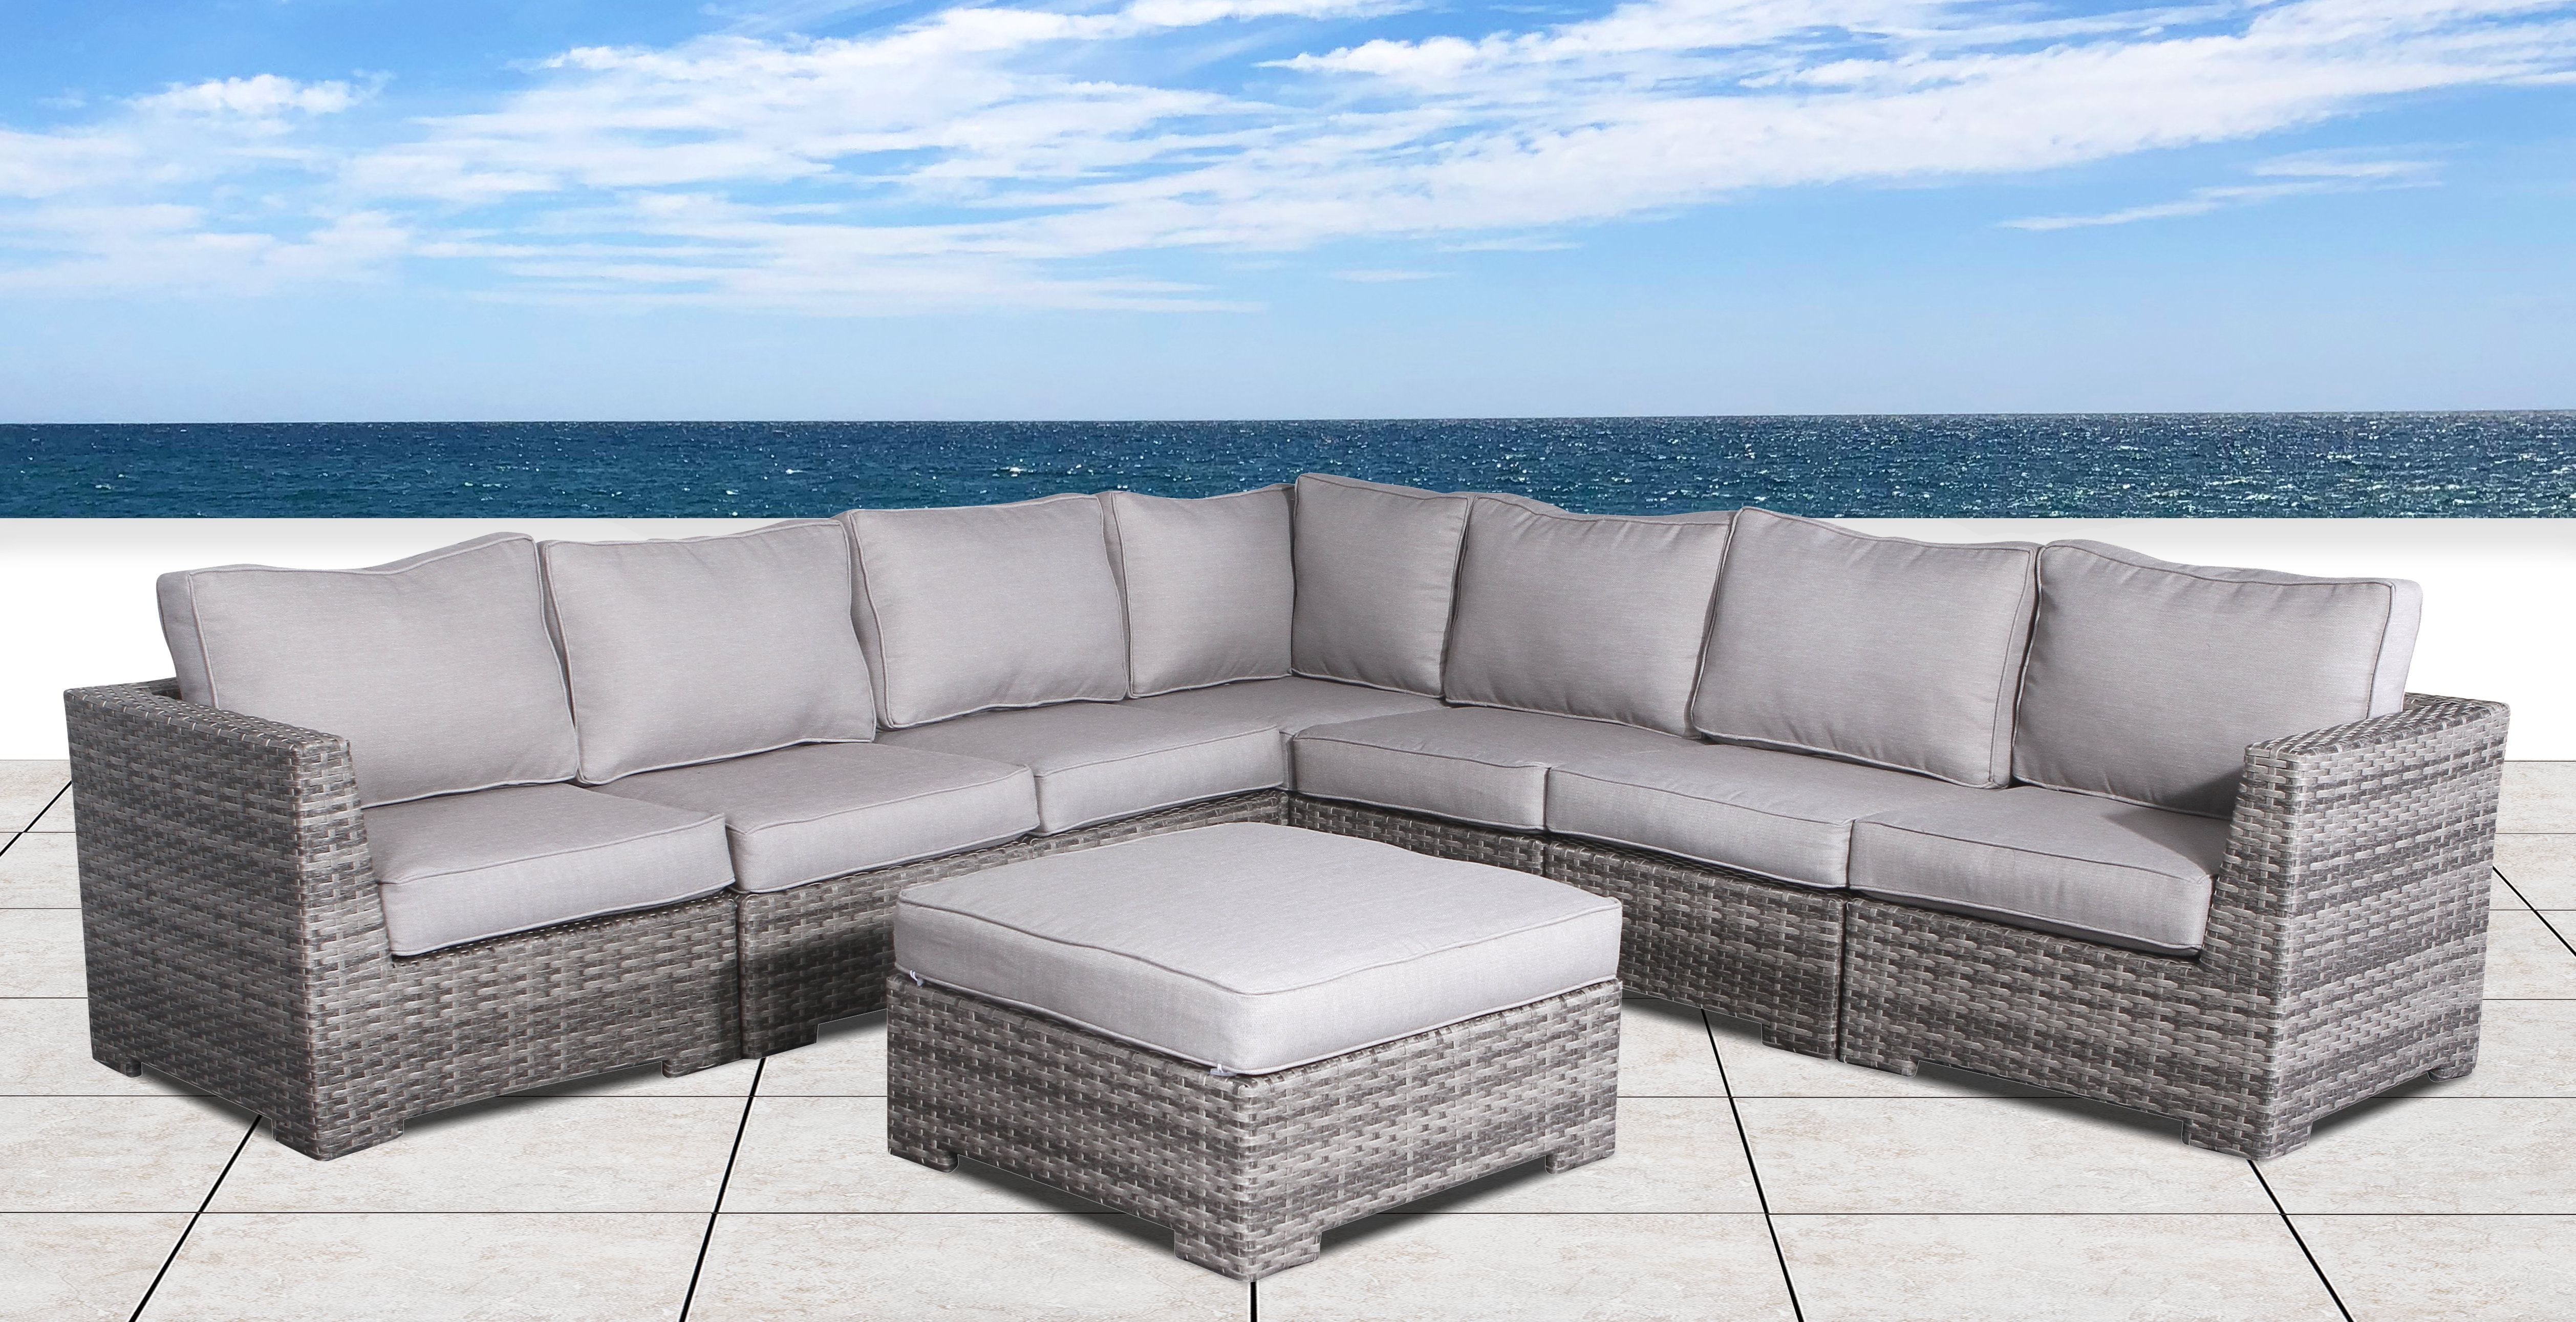 Nolen Patio Sectionals With Cushions For Most Popular Pierson Patio Sectional With Cushions (View 5 of 20)